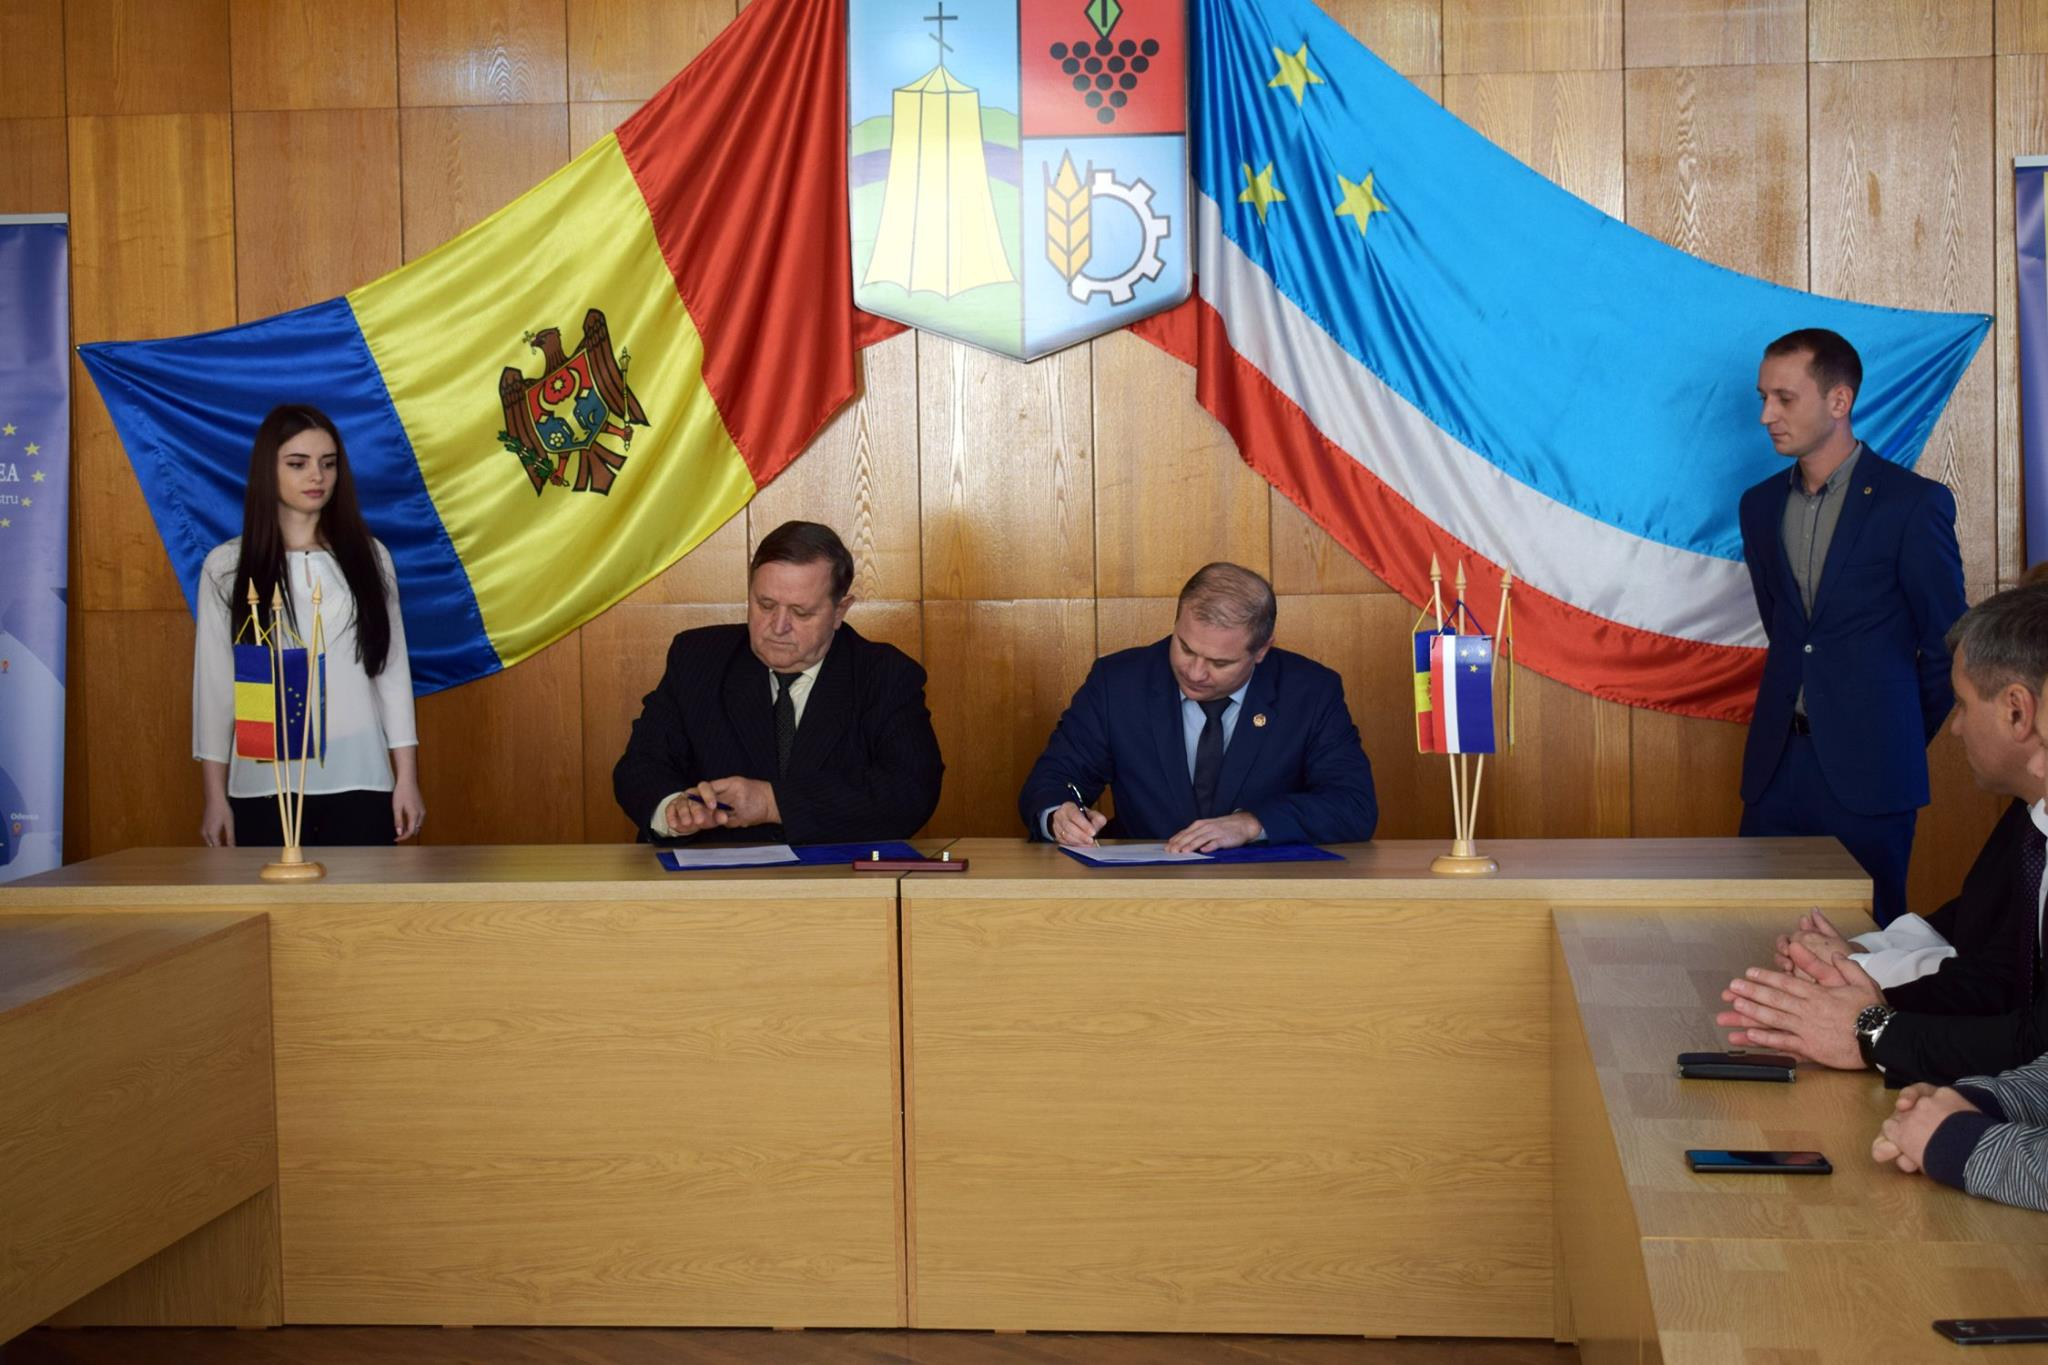 "<a class=""amazingslider-posttitle-link"" href=""http://www.euroregiune.org/en/december-9-signing-of-the-cooperation-agreement-at-ceadir-lunga-atu-gagauzia/"" target=""_self"">December 9, Signing of the Cooperation Agreement at Ceadir-Lunga, ATU Gagauzia</a>"